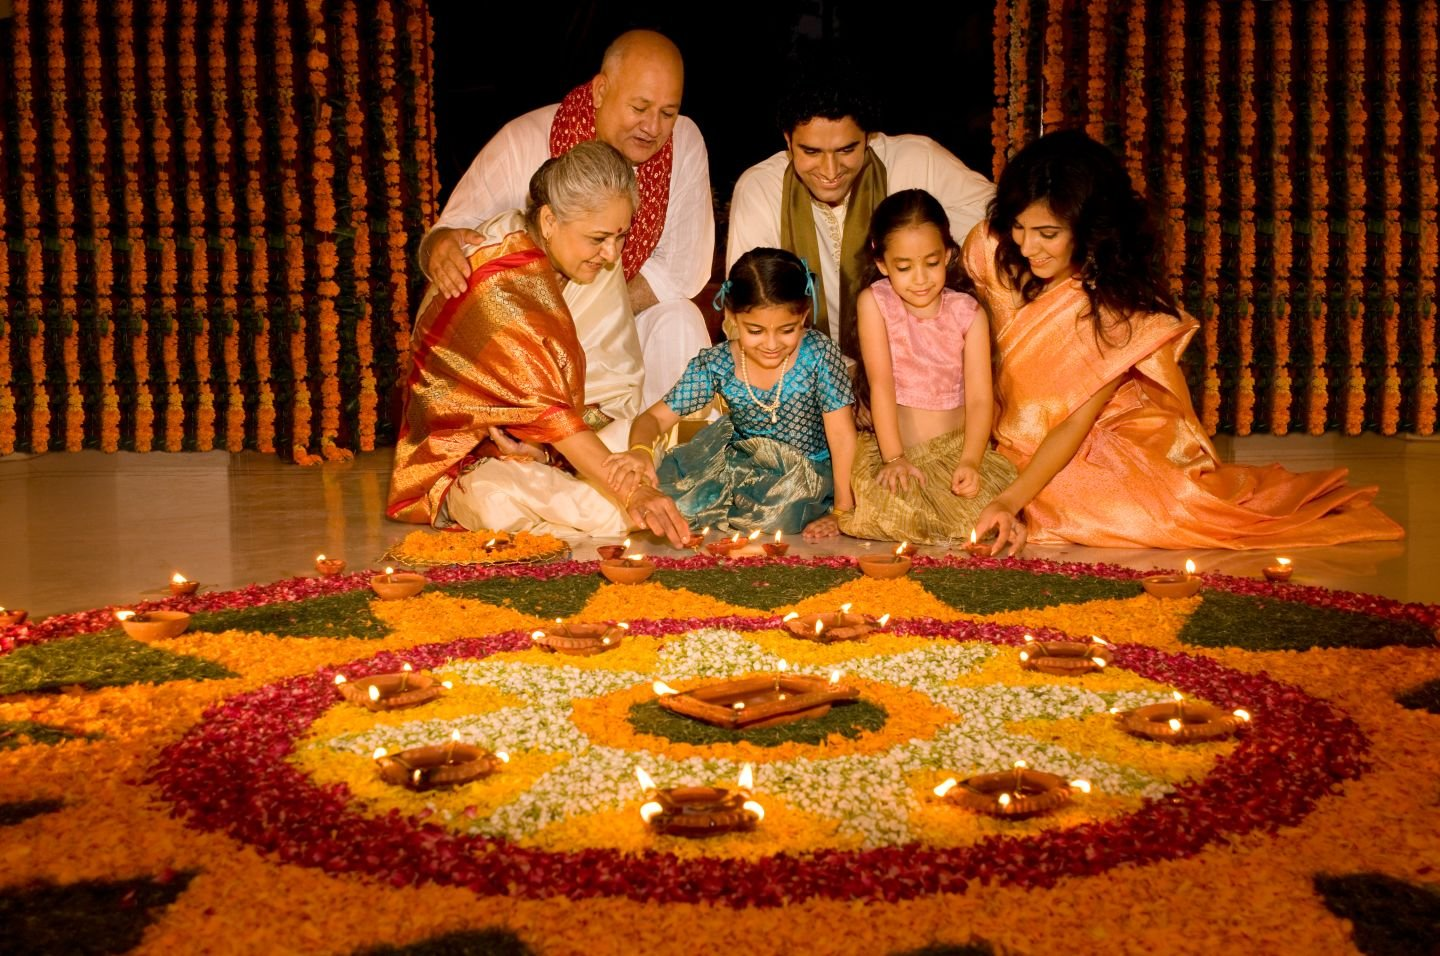 1625967073_133_Essay-On-Indian-Festival-Diwali-For-Students-In-Easy-Words